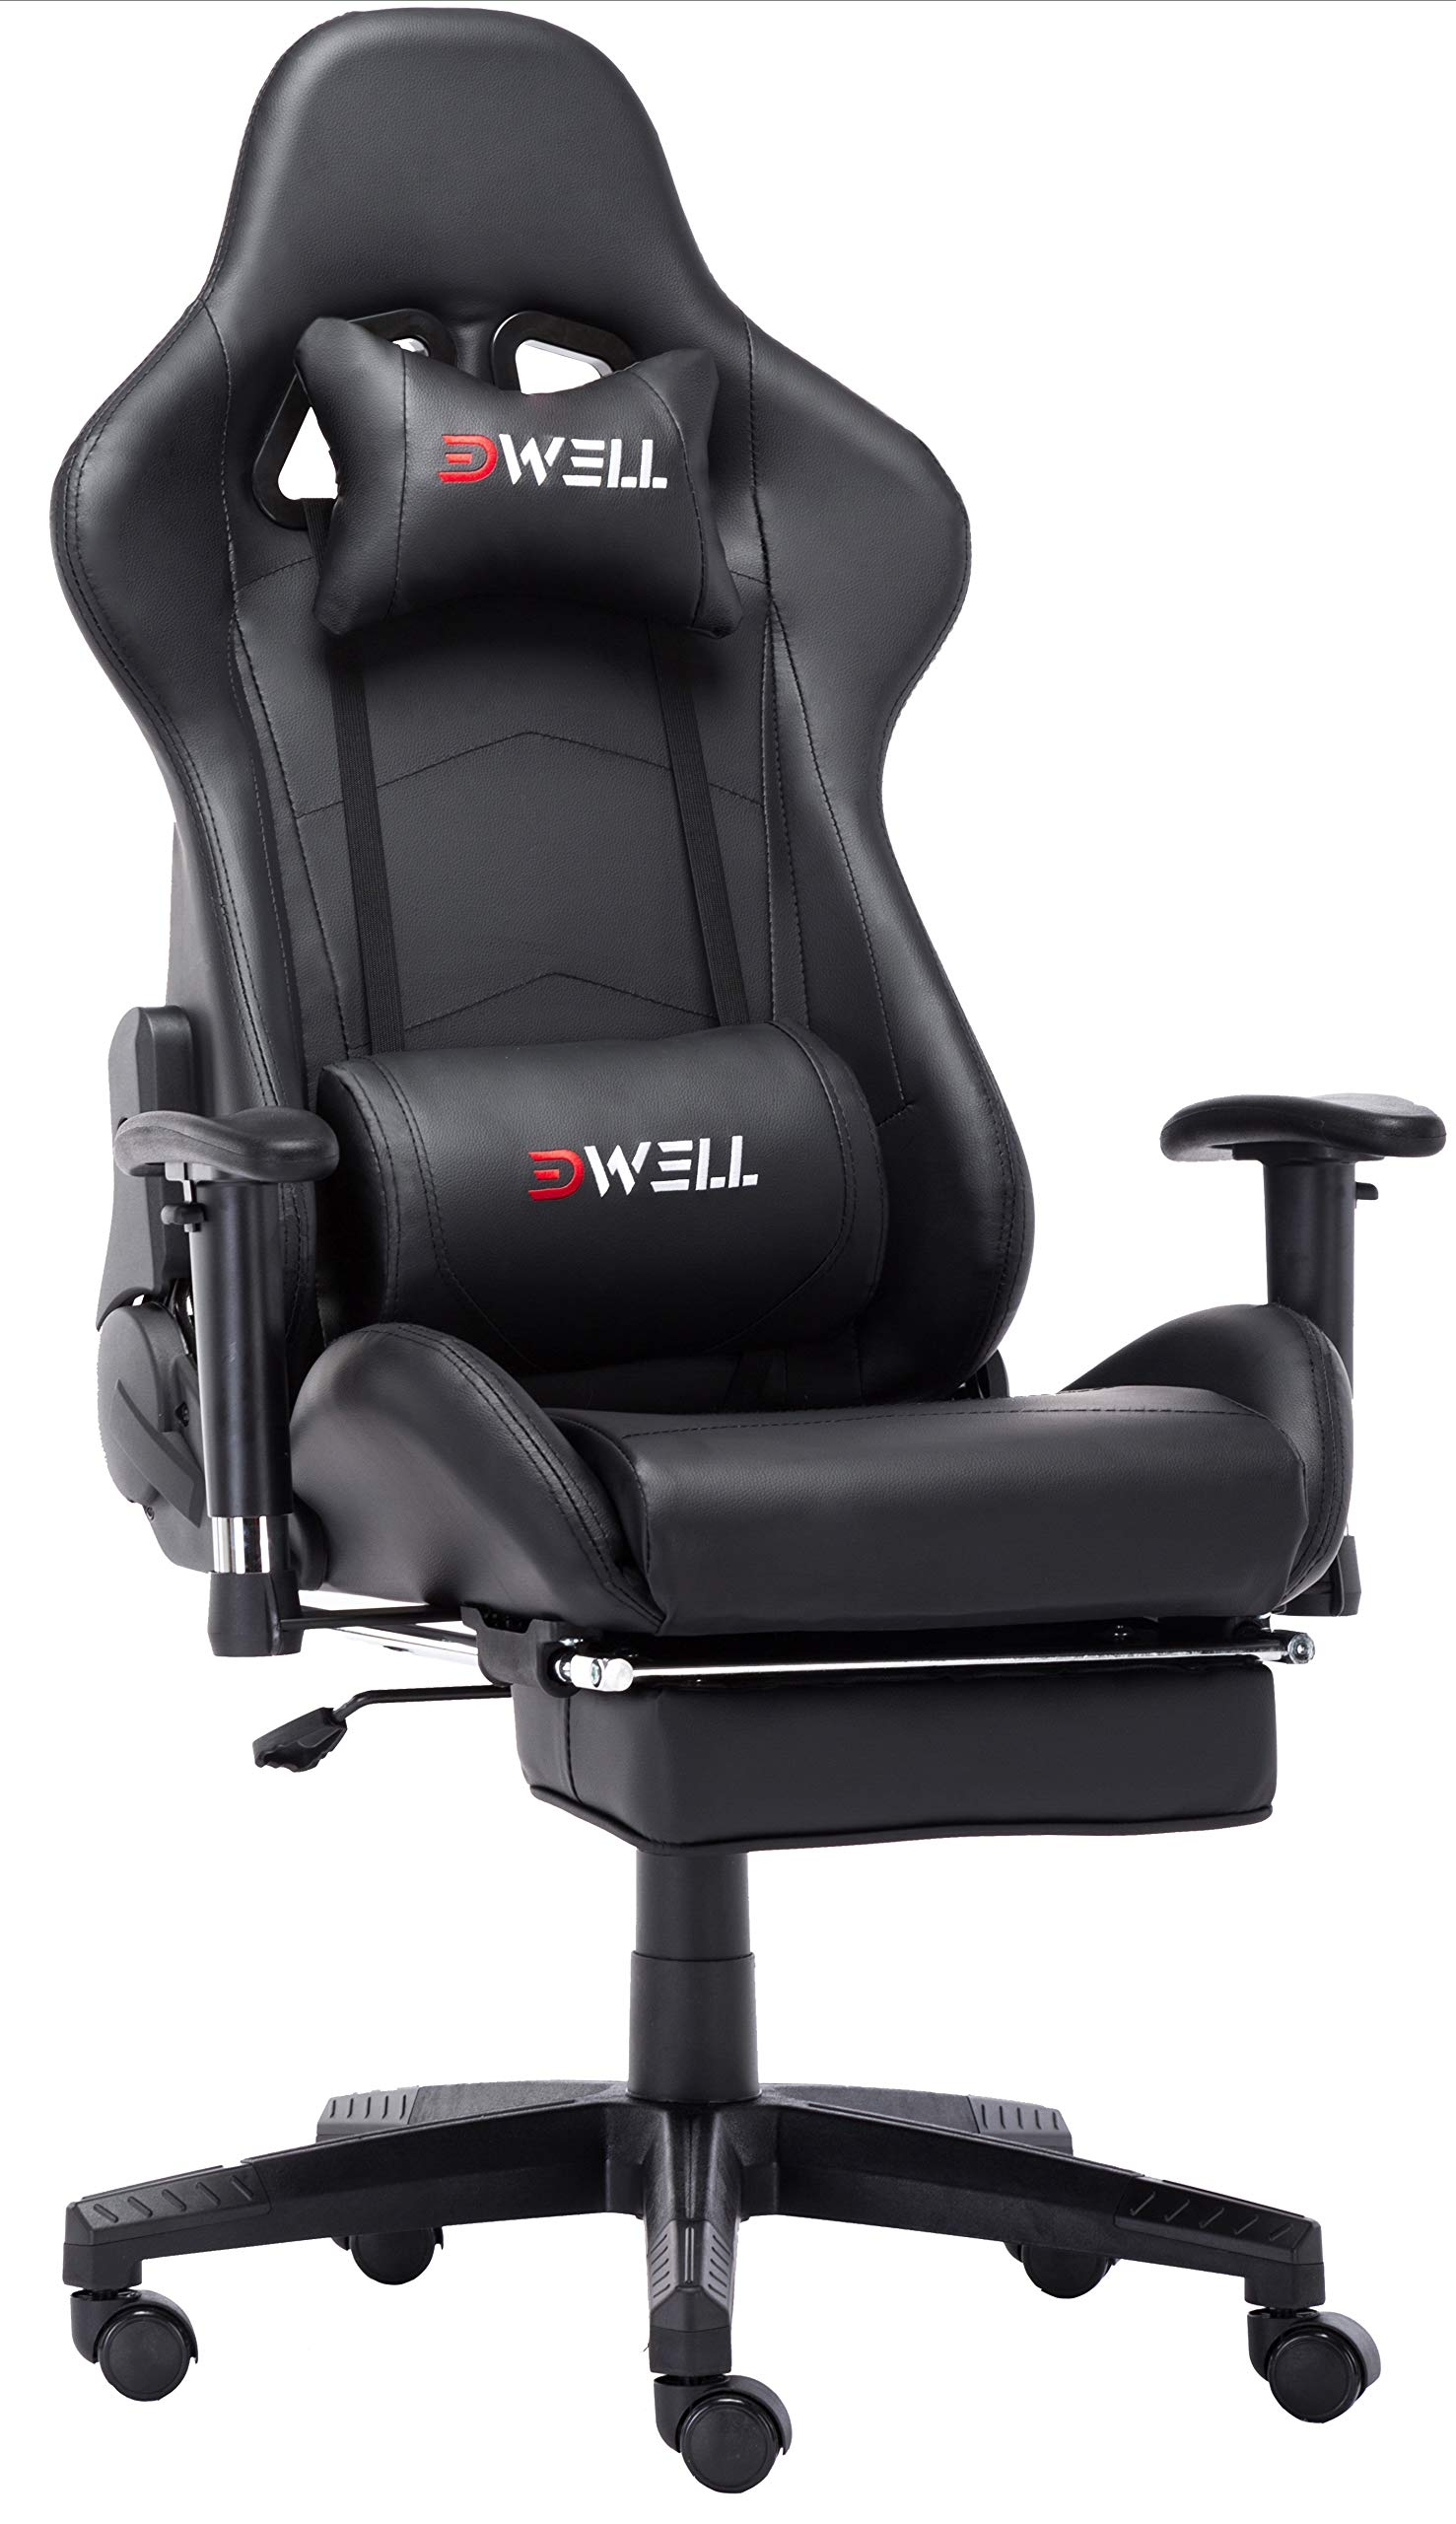 Computer Gaming Chair Office Desk Chair,Large Size Racing Chair High-Back Ergonomic PU Leather Adjustable Esports Desk Chair with Headrest Massage Lumbar Support Retractable Footrest (Black) by Ansuit